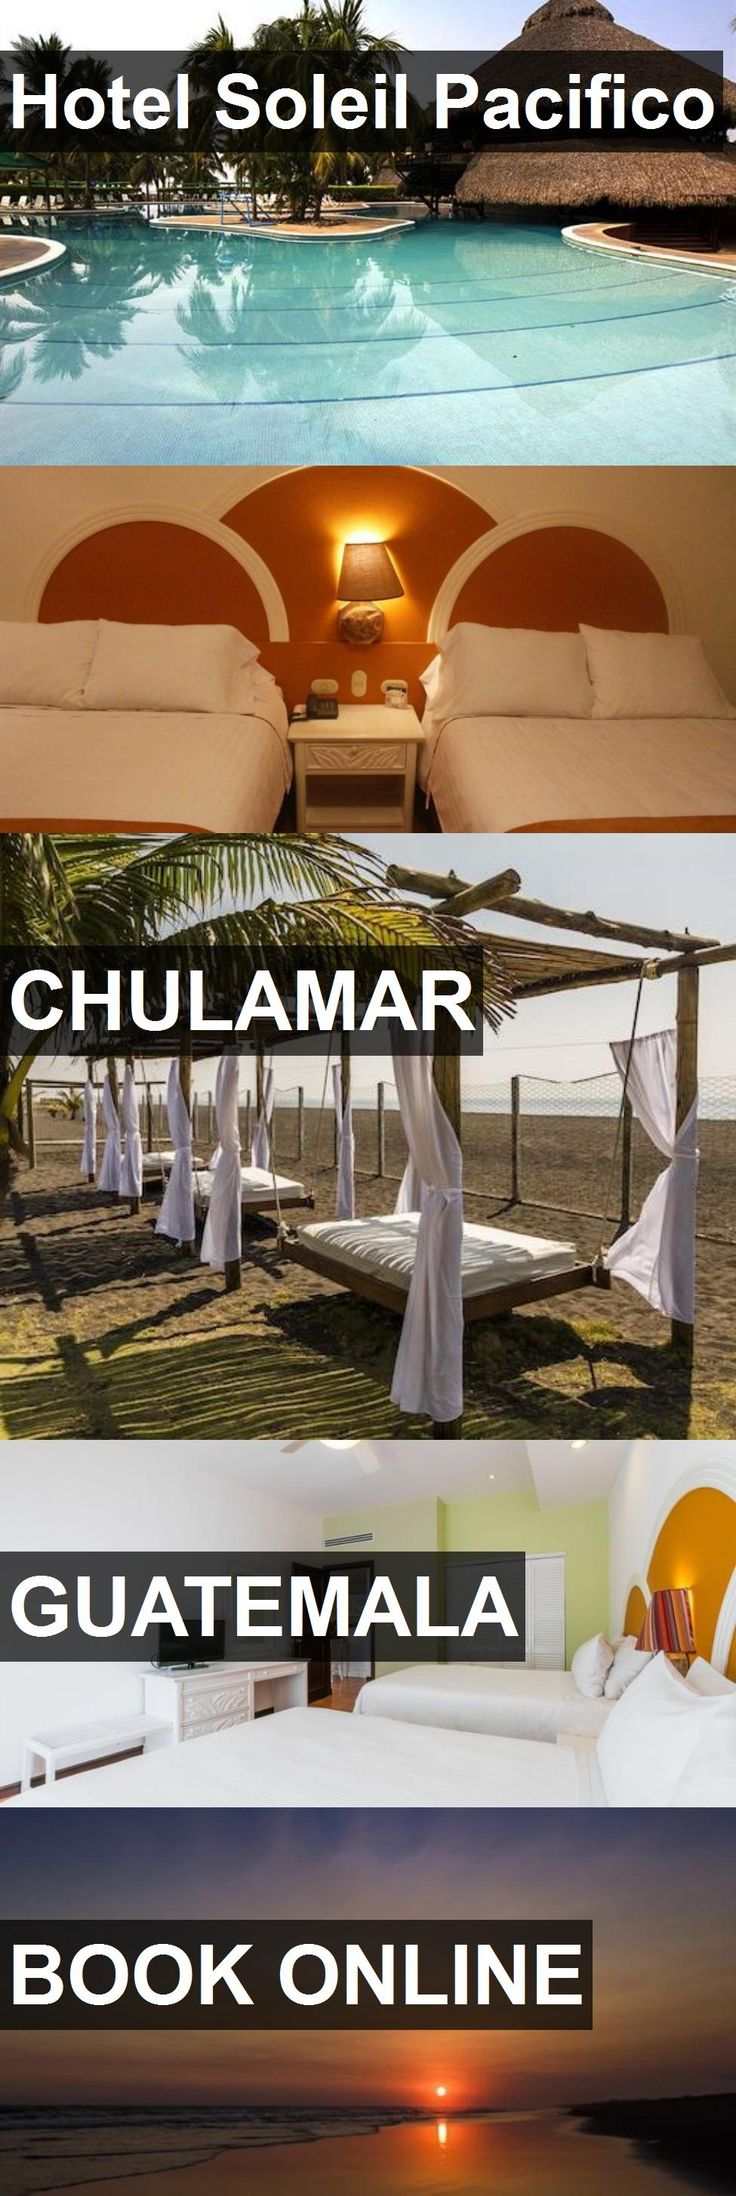 Hotel Soleil Pacifico in Chulamar, Guatemala. For more information, photos, reviews and best prices please follow the link. #Guatemala #Chulamar #travel #vacation #hotel